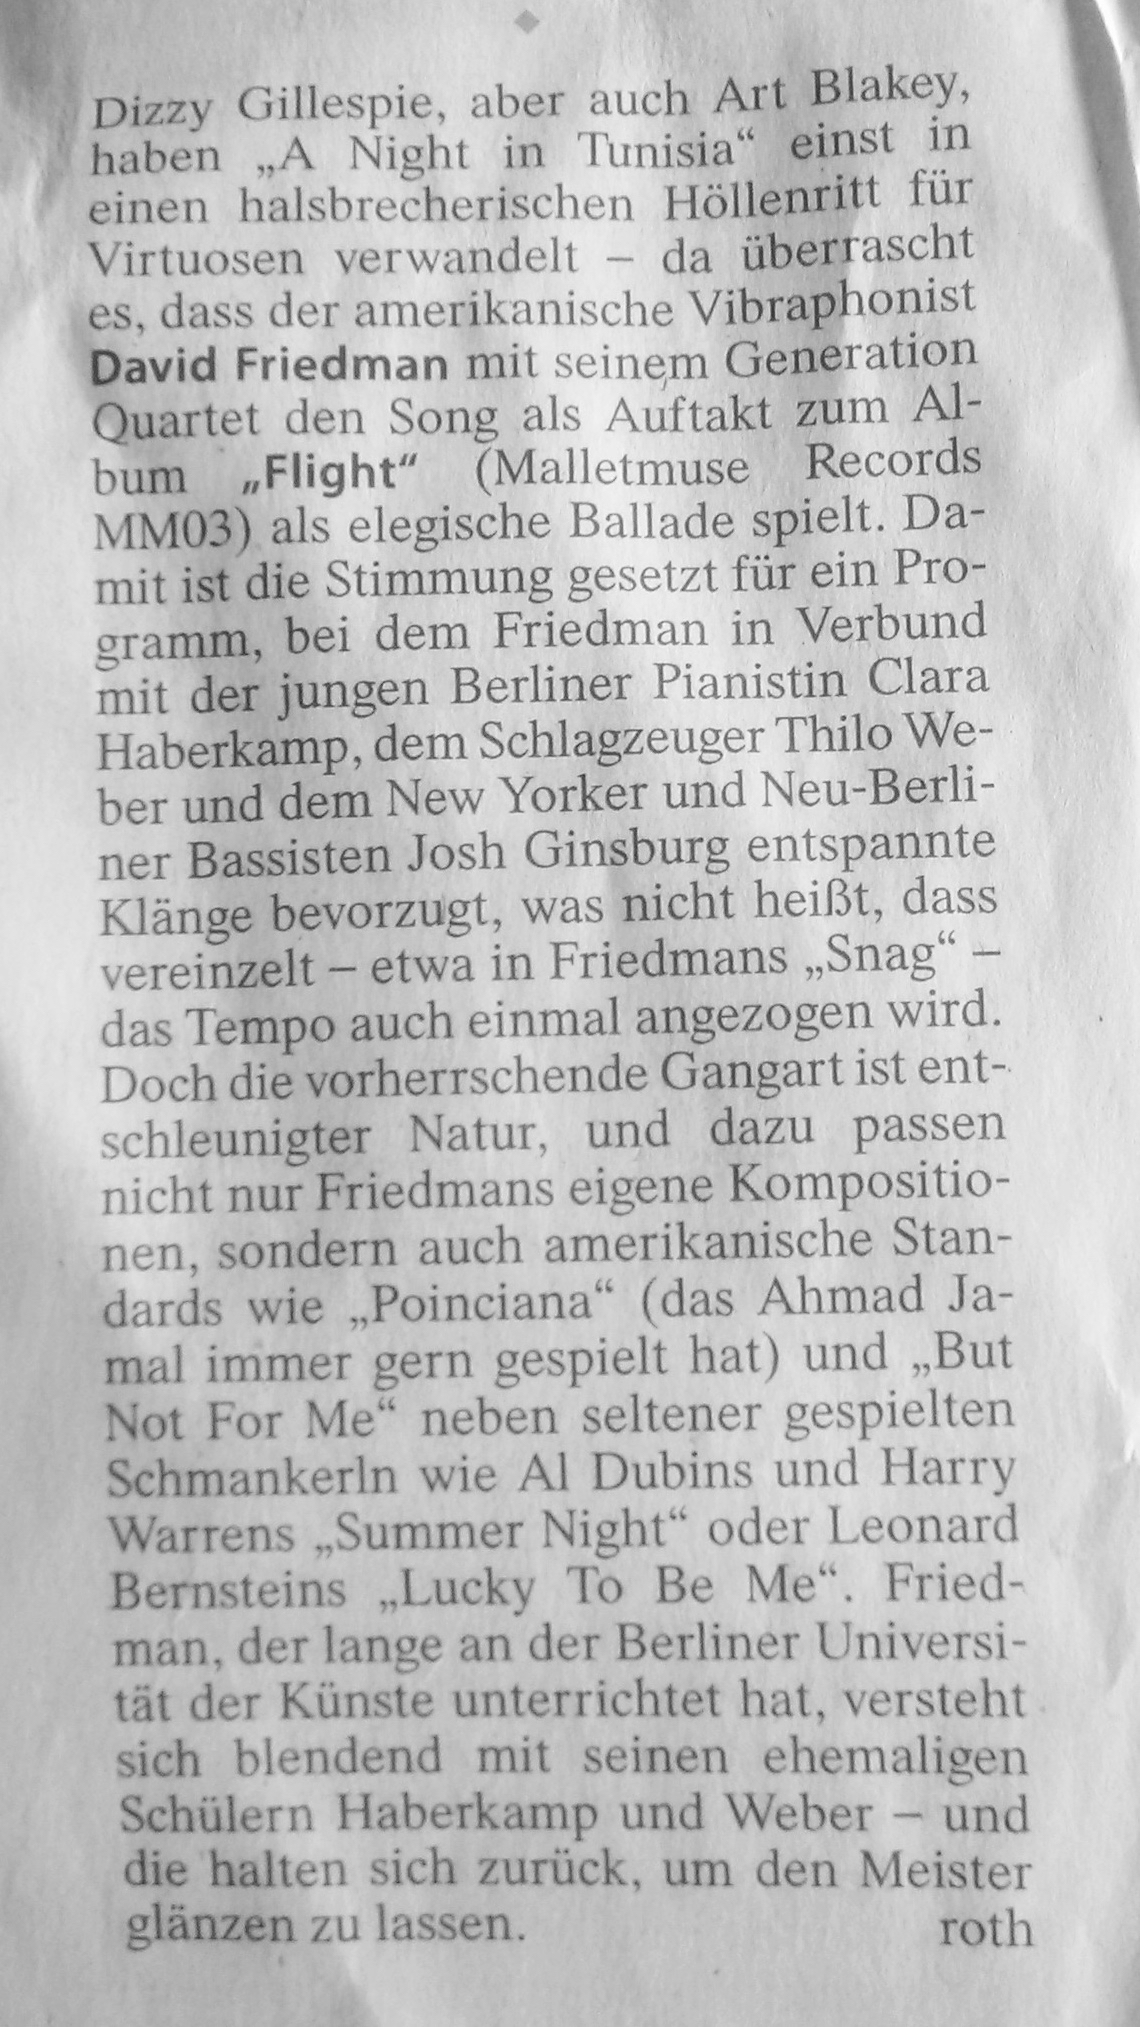 David Friedman generations Quartet Frankfurter Allgemeine Zeitung review Flight